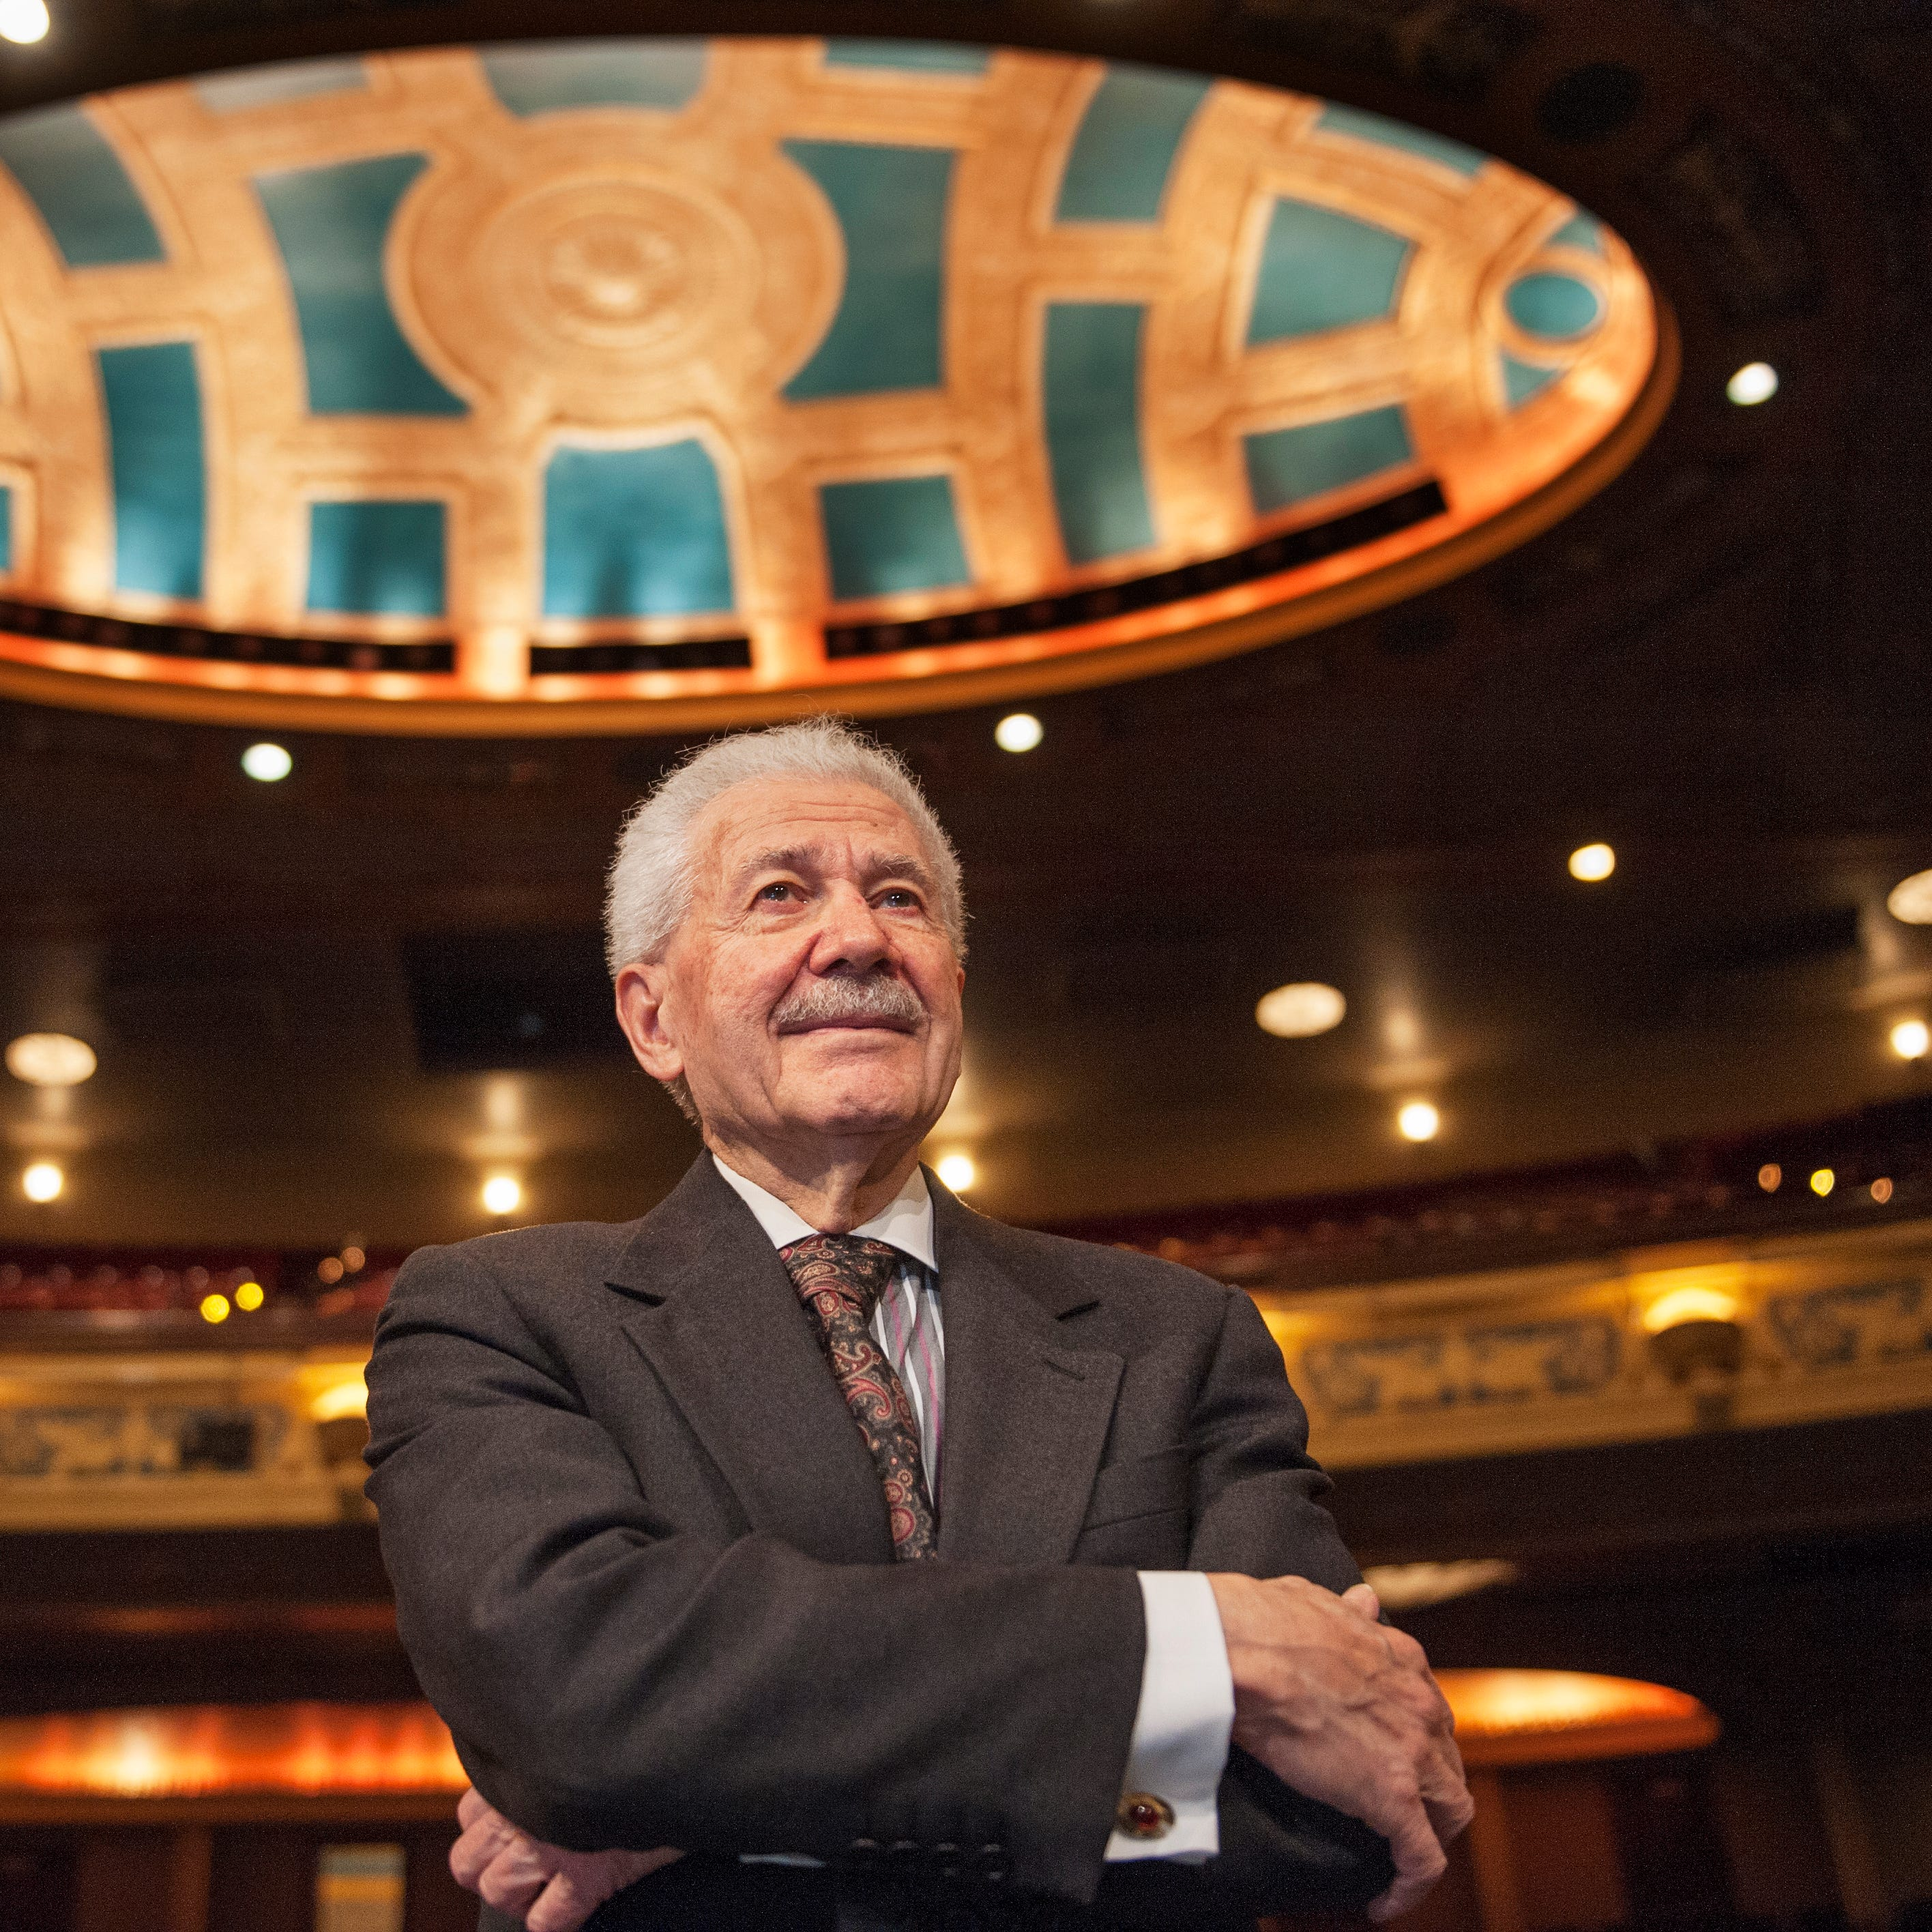 Michigan Opera Theatre artistic director David DiChiera inside the Detroit Opera House in Detroit. DiChiera, who founded MOT in 1971 and has served as its director ever since, will retire in the summer of 2017. Photos taken on Friday, March 4, 2016. (John T. Greilick, The Detroit News)